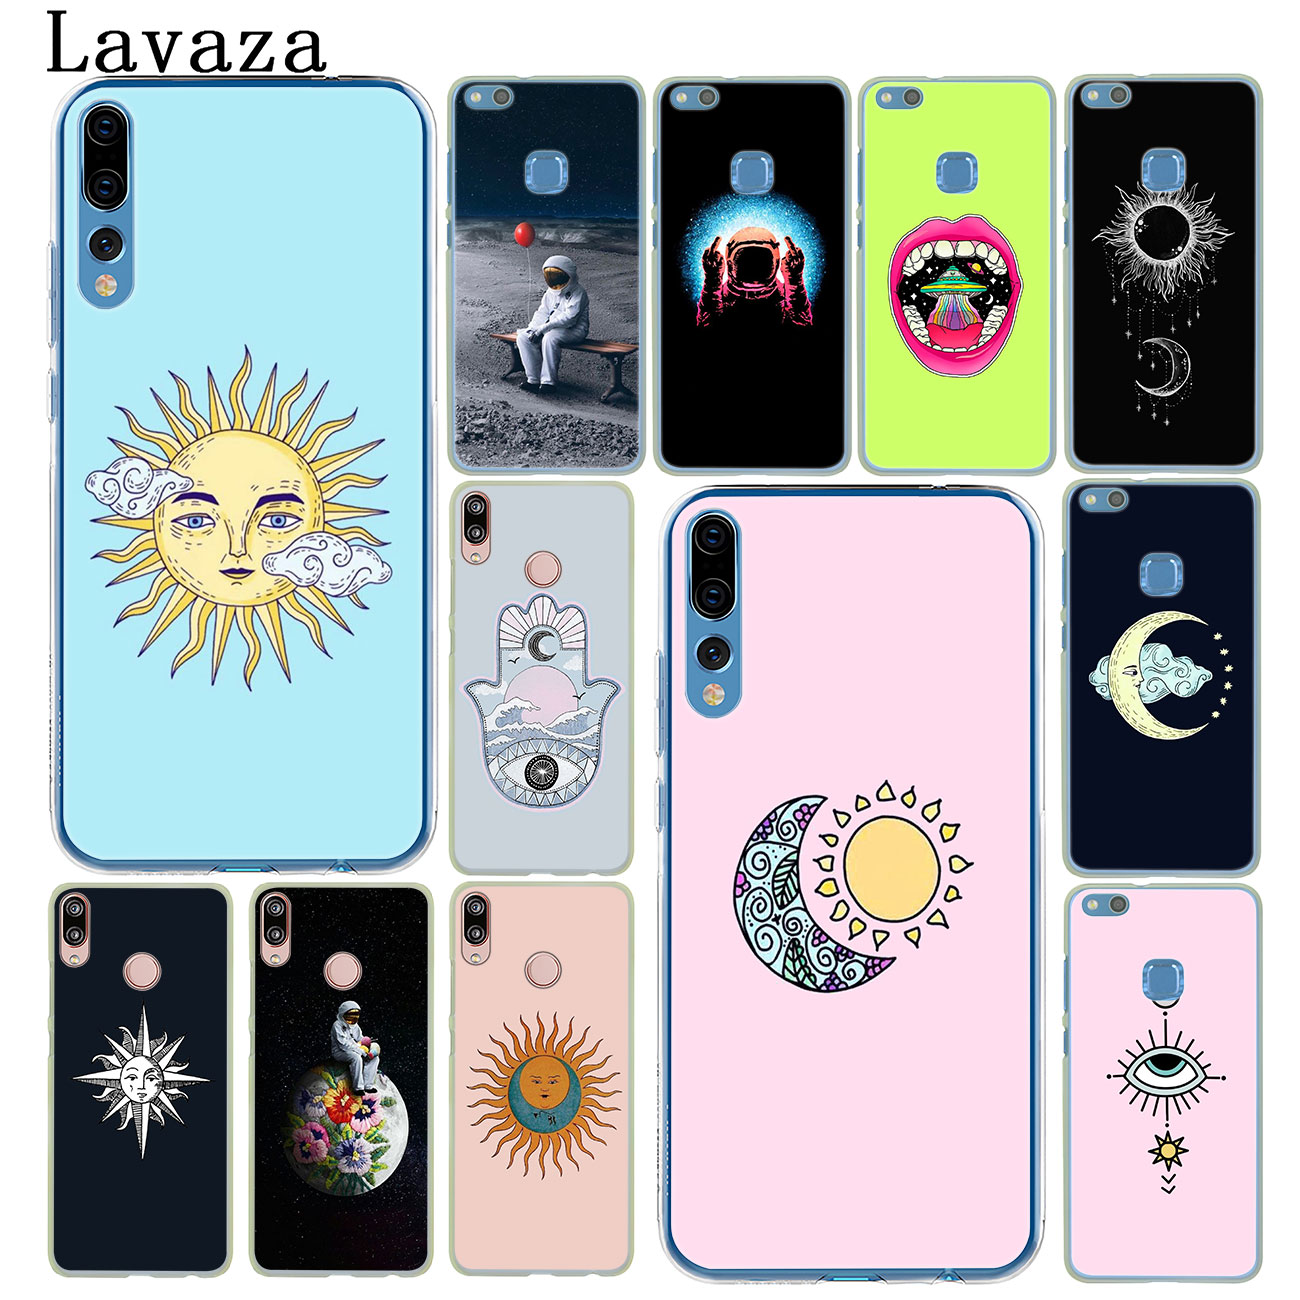 Disciplined Lavaza Sun And Moon Wiccan Hard Phone Case For Huawei P20 P9 P10 Plus P8 Mate 20 Pro 10 Lite Mini 2016 2017 P Smart 2019 Cover Cellphones & Telecommunications